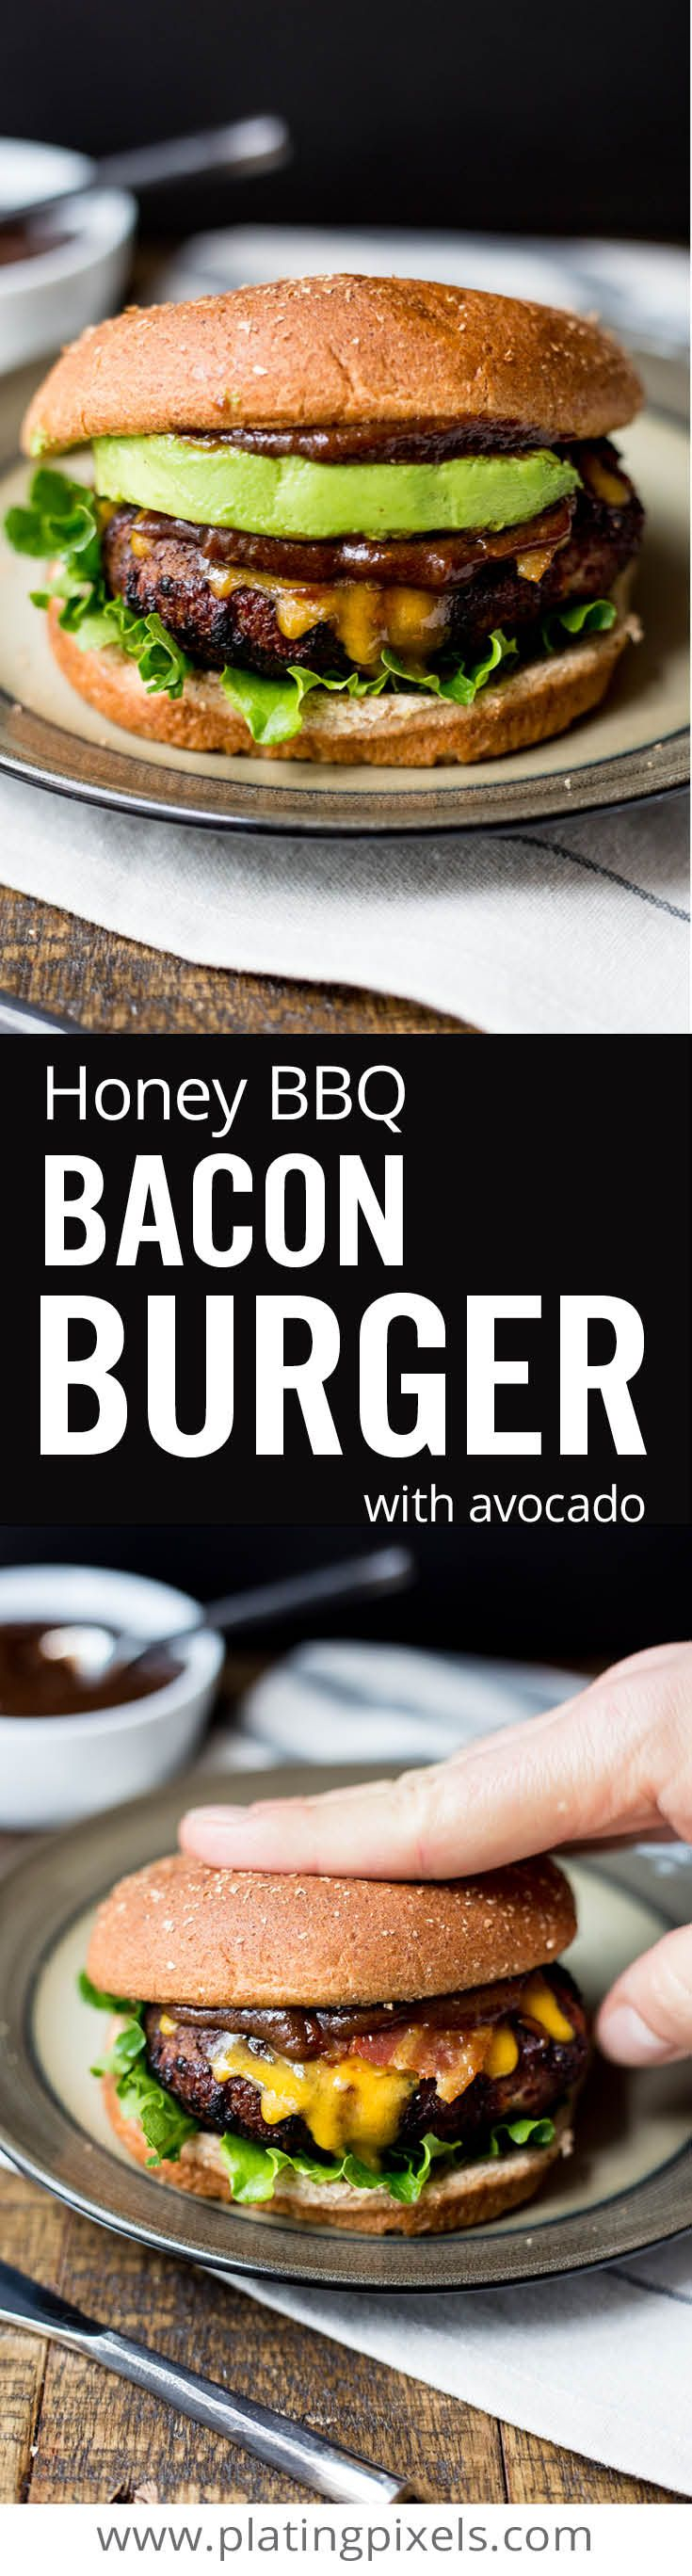 The ultimate homemade grilled honey bbq bacon burger recipe. Easy juicy burger with @KCMBBQ bbq sauce, bacon, cheddar and avocado you can cook at home on the barbecue. With gluten free option #ad #KCMasterpiece www.platingpixels.com